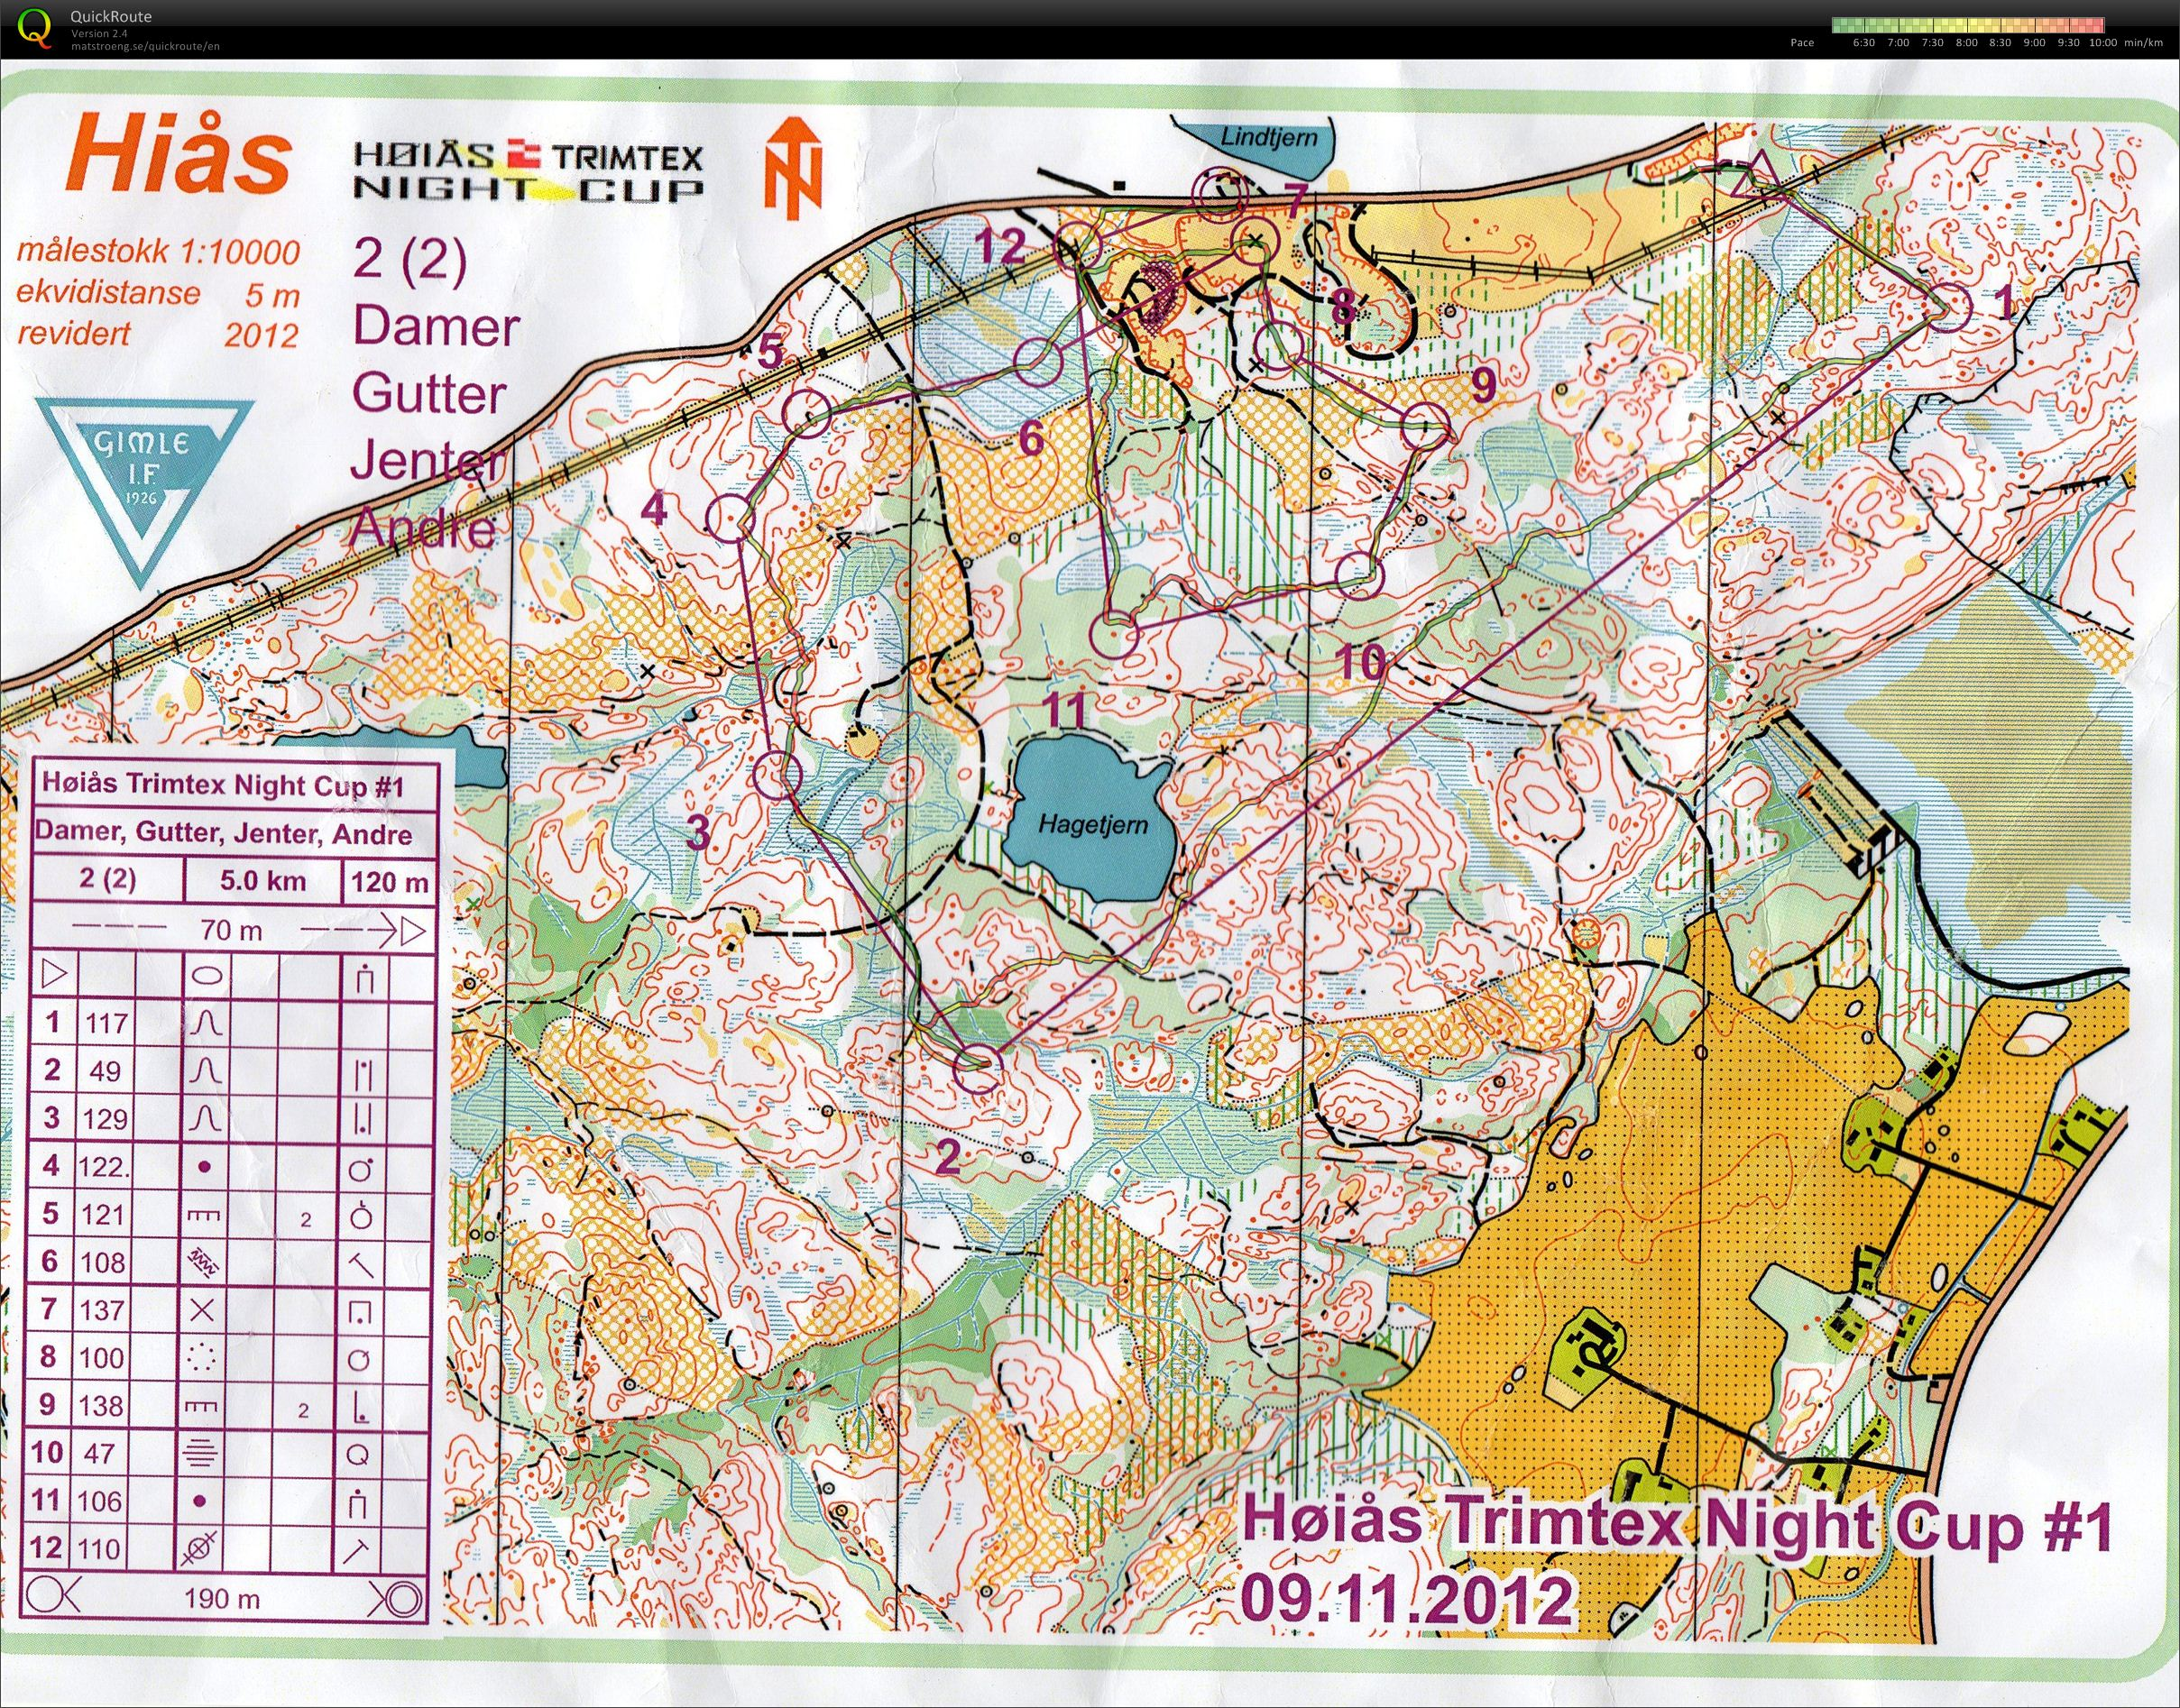 Høiås Night Cup #1 (09.11.2012)